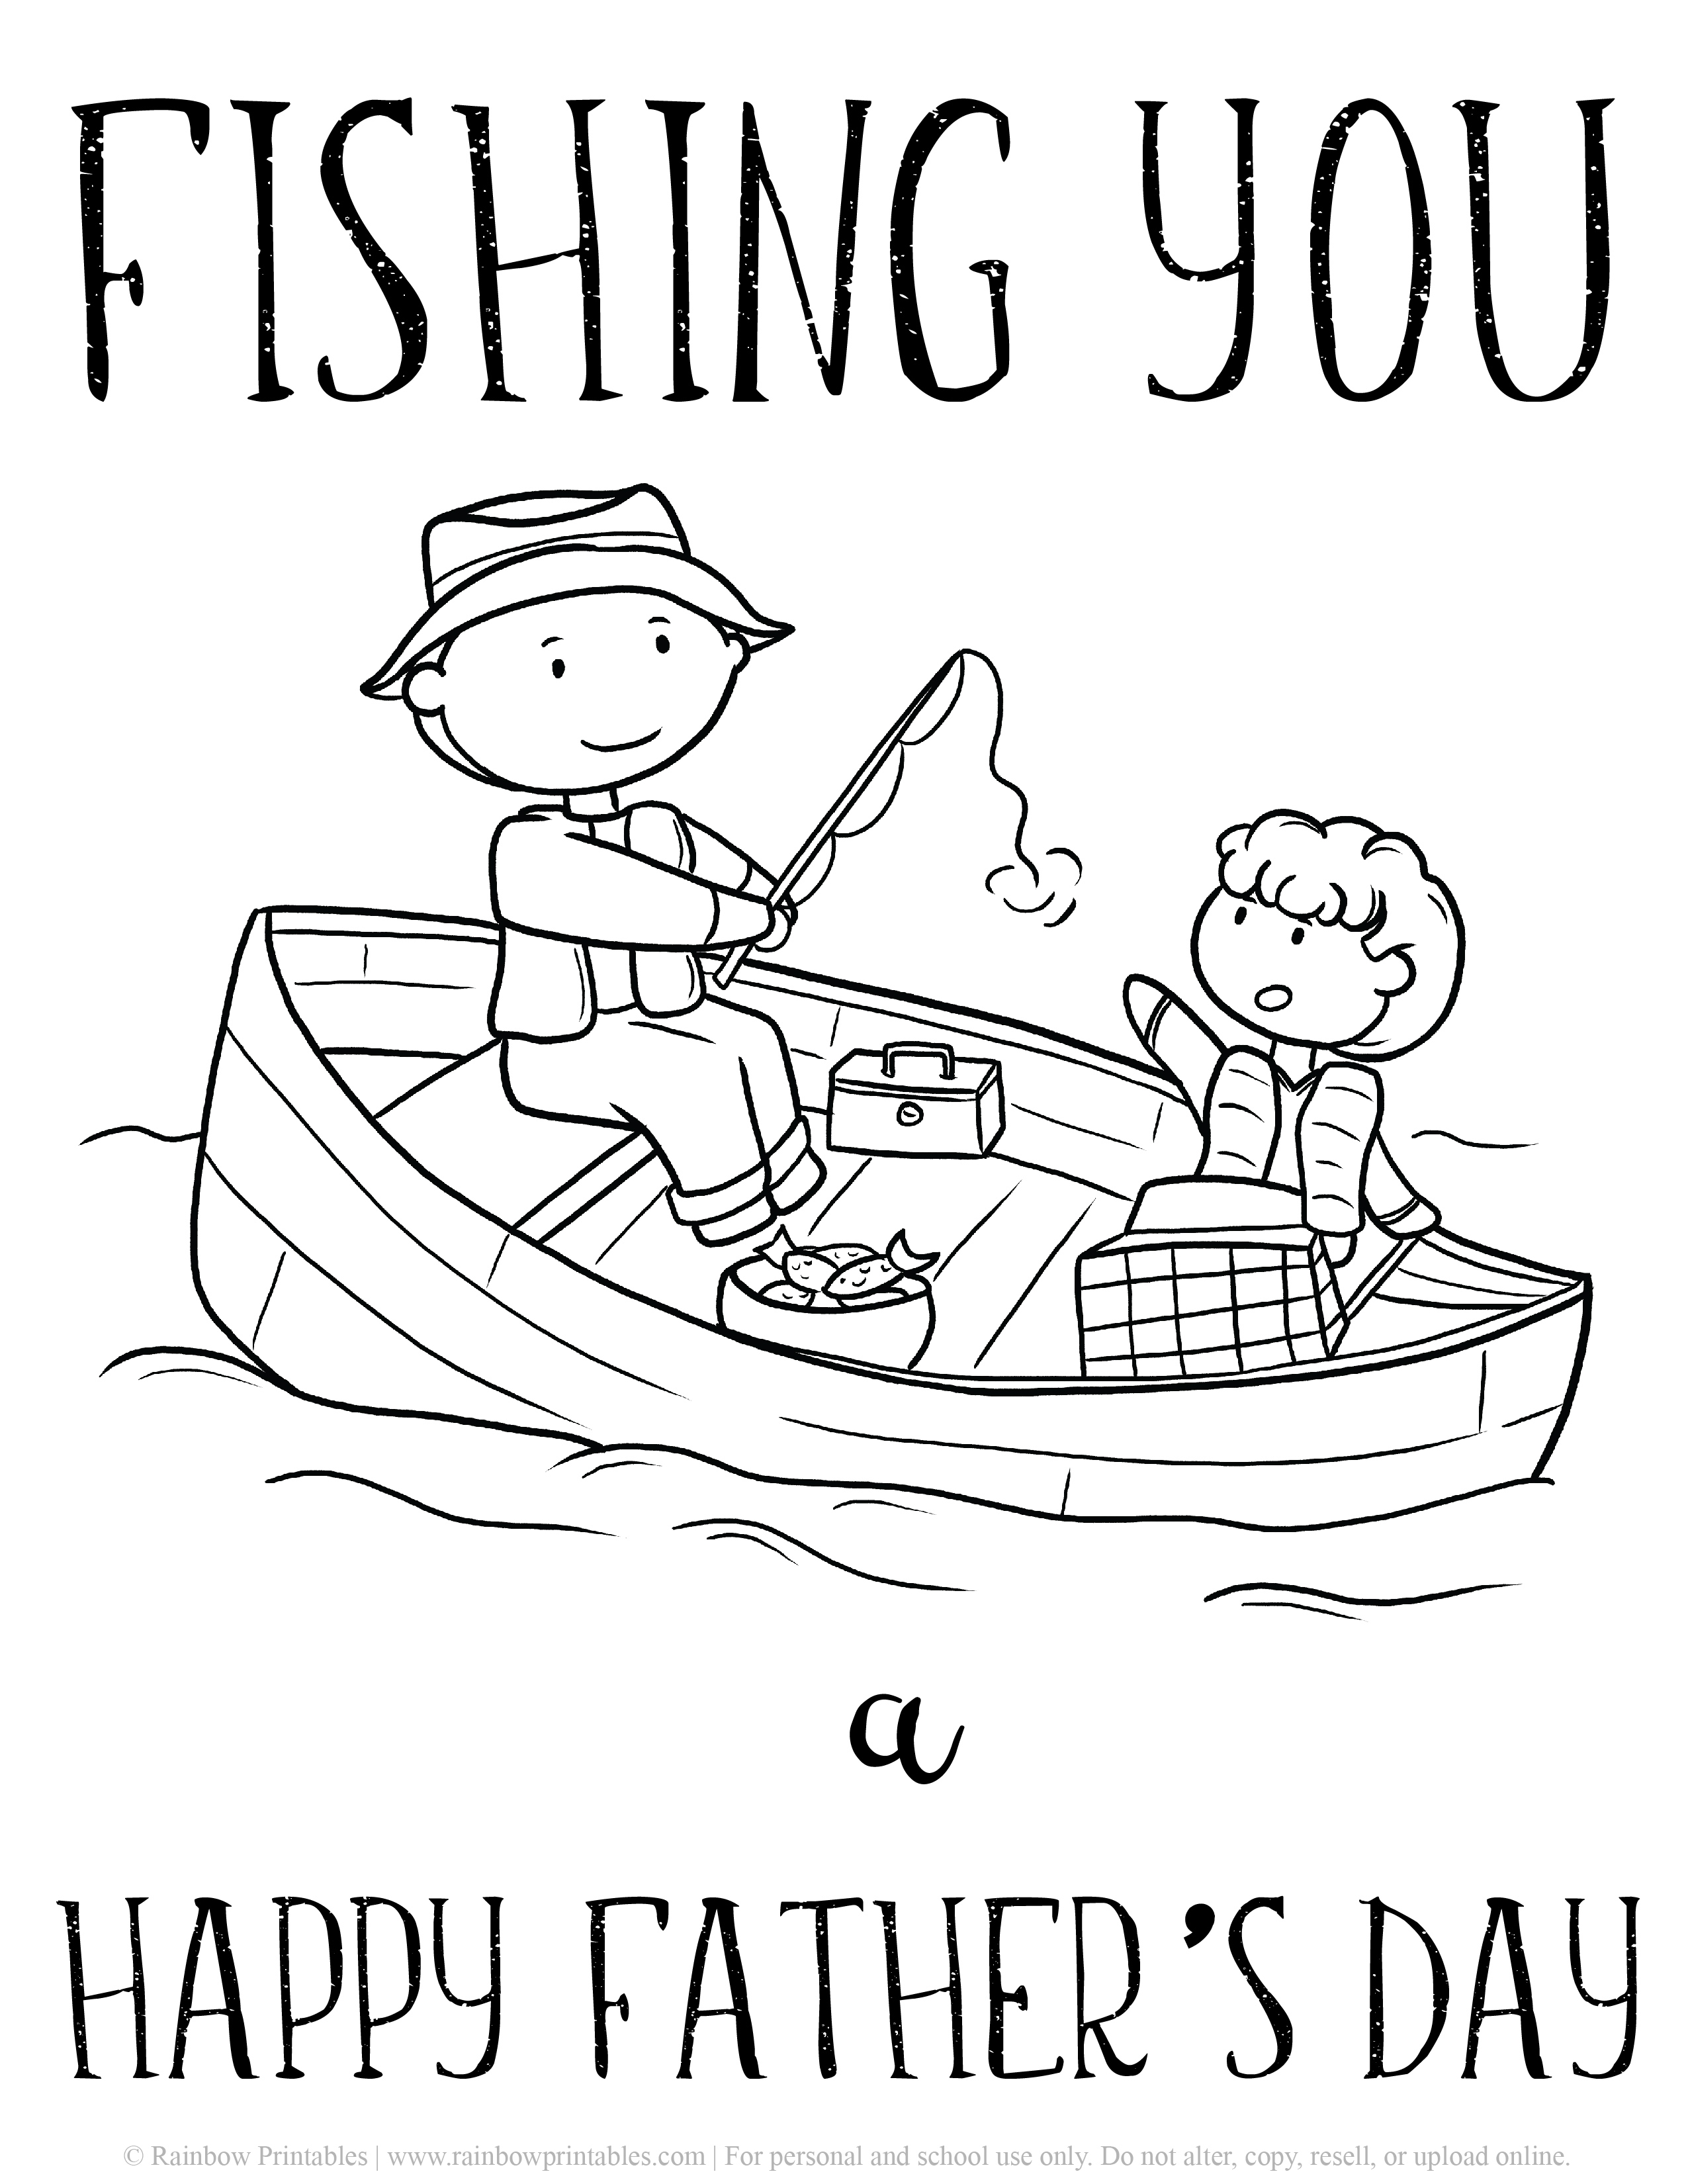 Fishing You a Happy Father's Day Boat Father Son Fisher Boat happy fathers day dad appreciation coloring page Father's Day Punny Greeting Card Clipart Printable